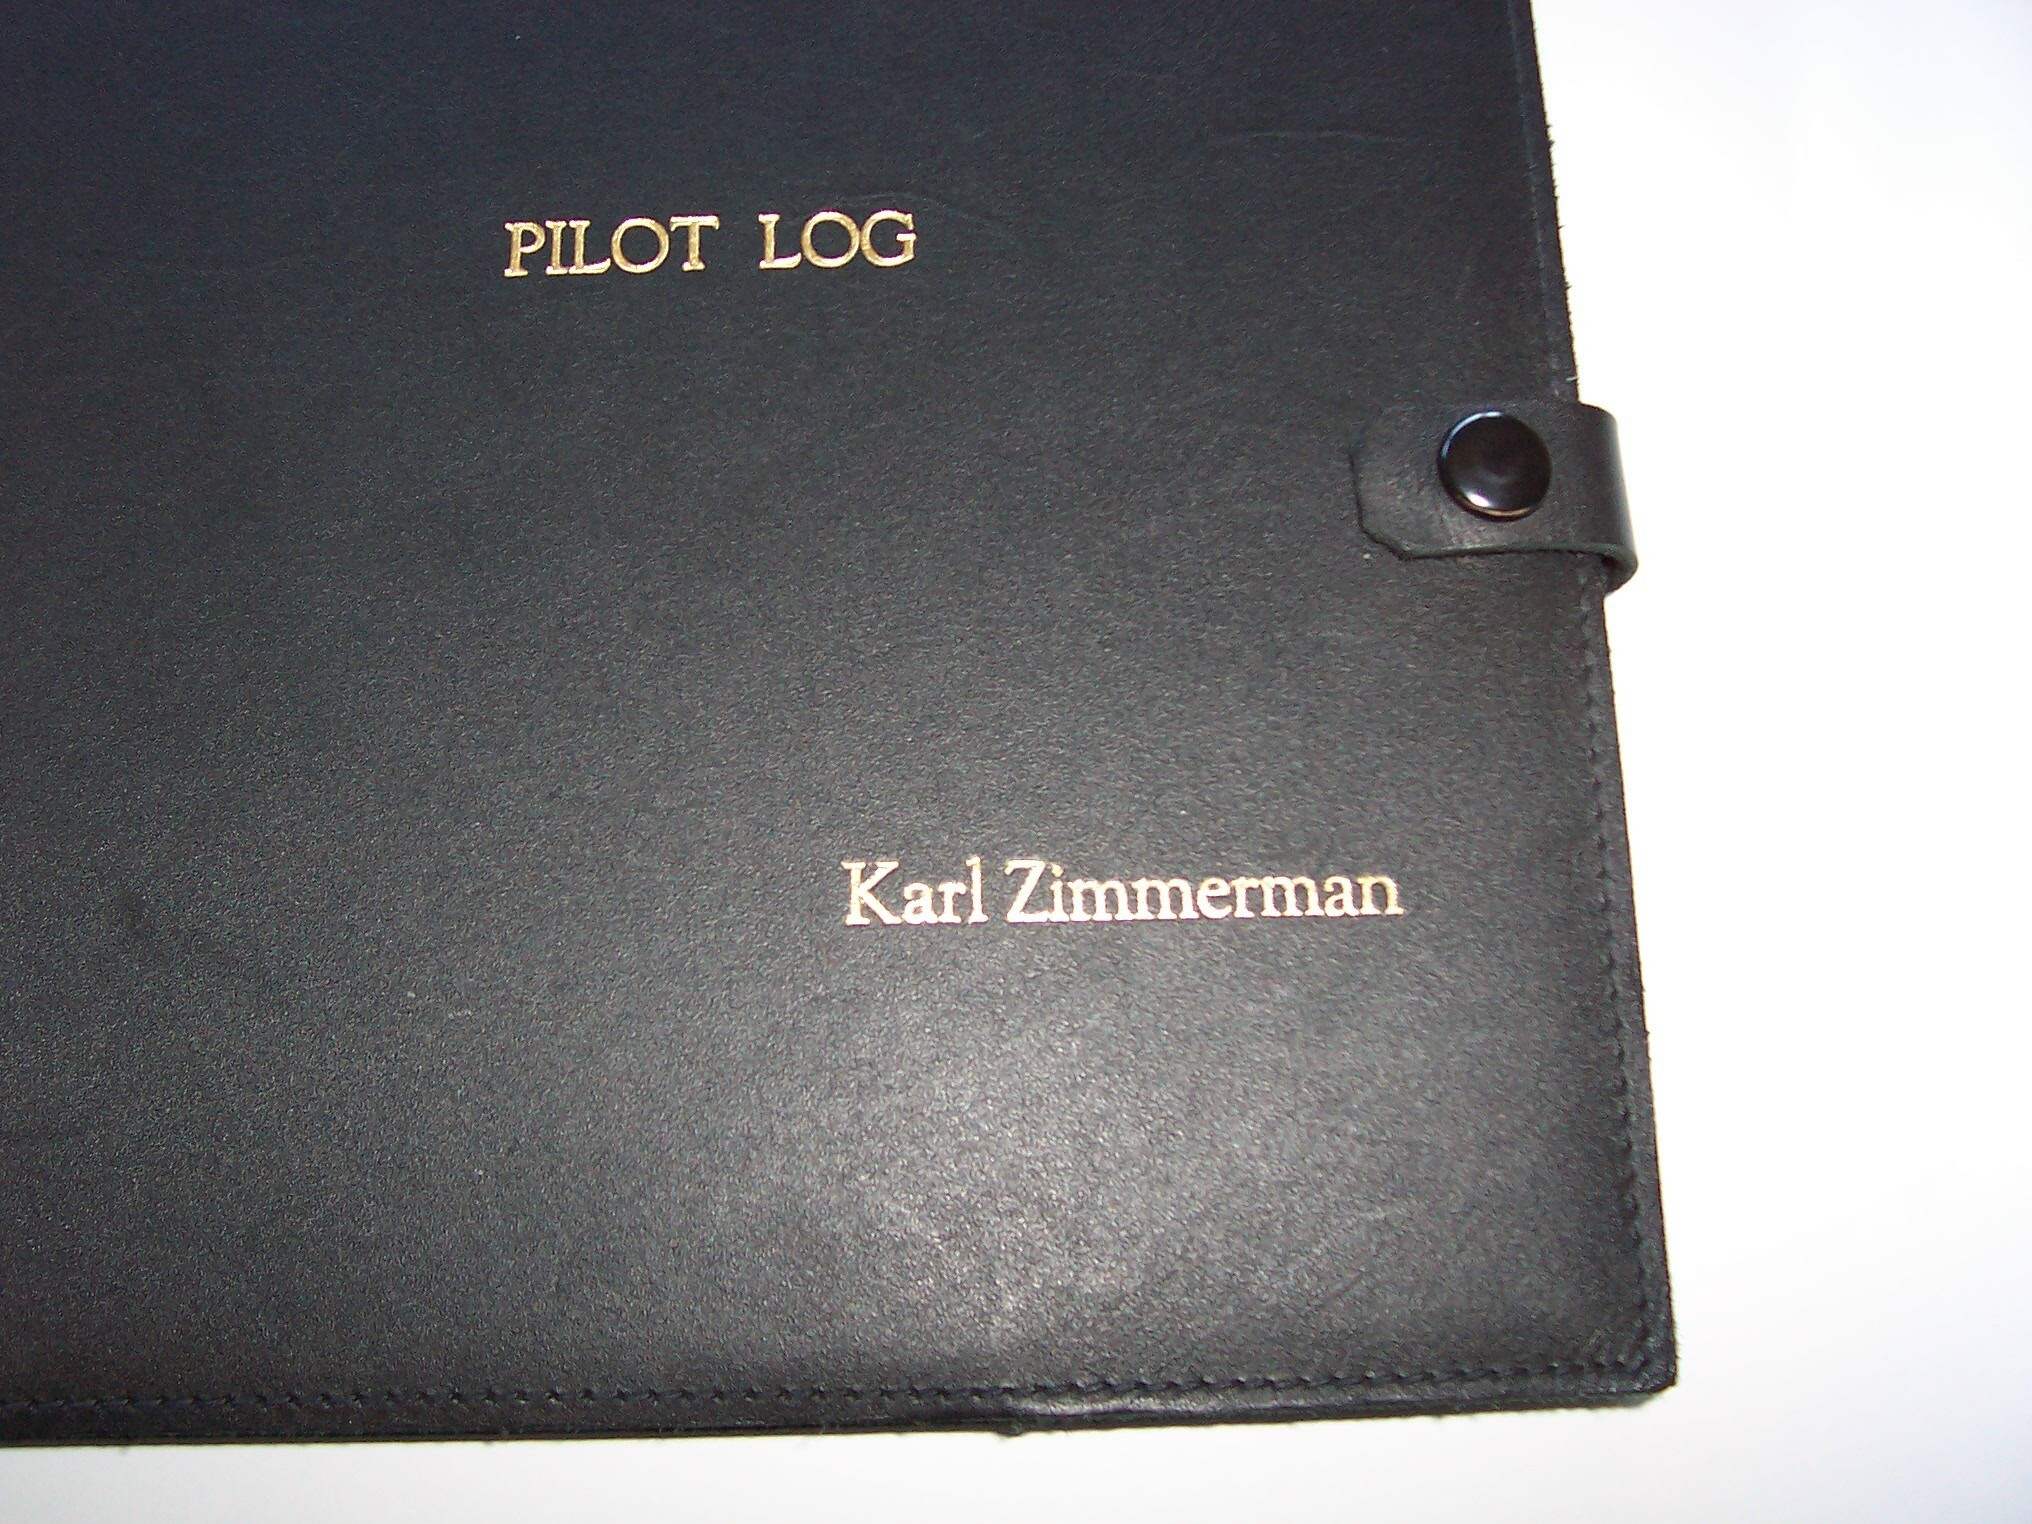 Black Leather Book Cover : Have your name embossed in gold on the black leather pilot